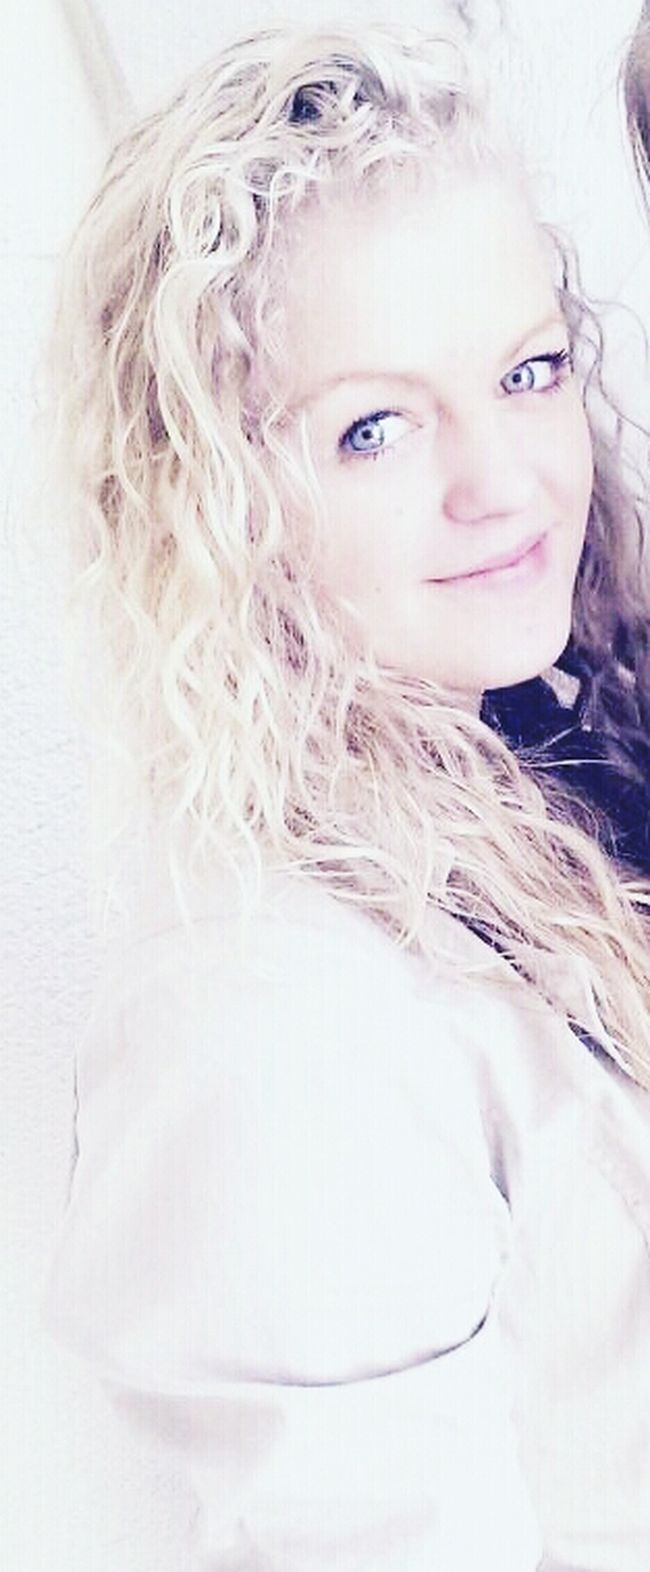 That's Me Live Your Life *-* Long Blond Hair Smile ✌